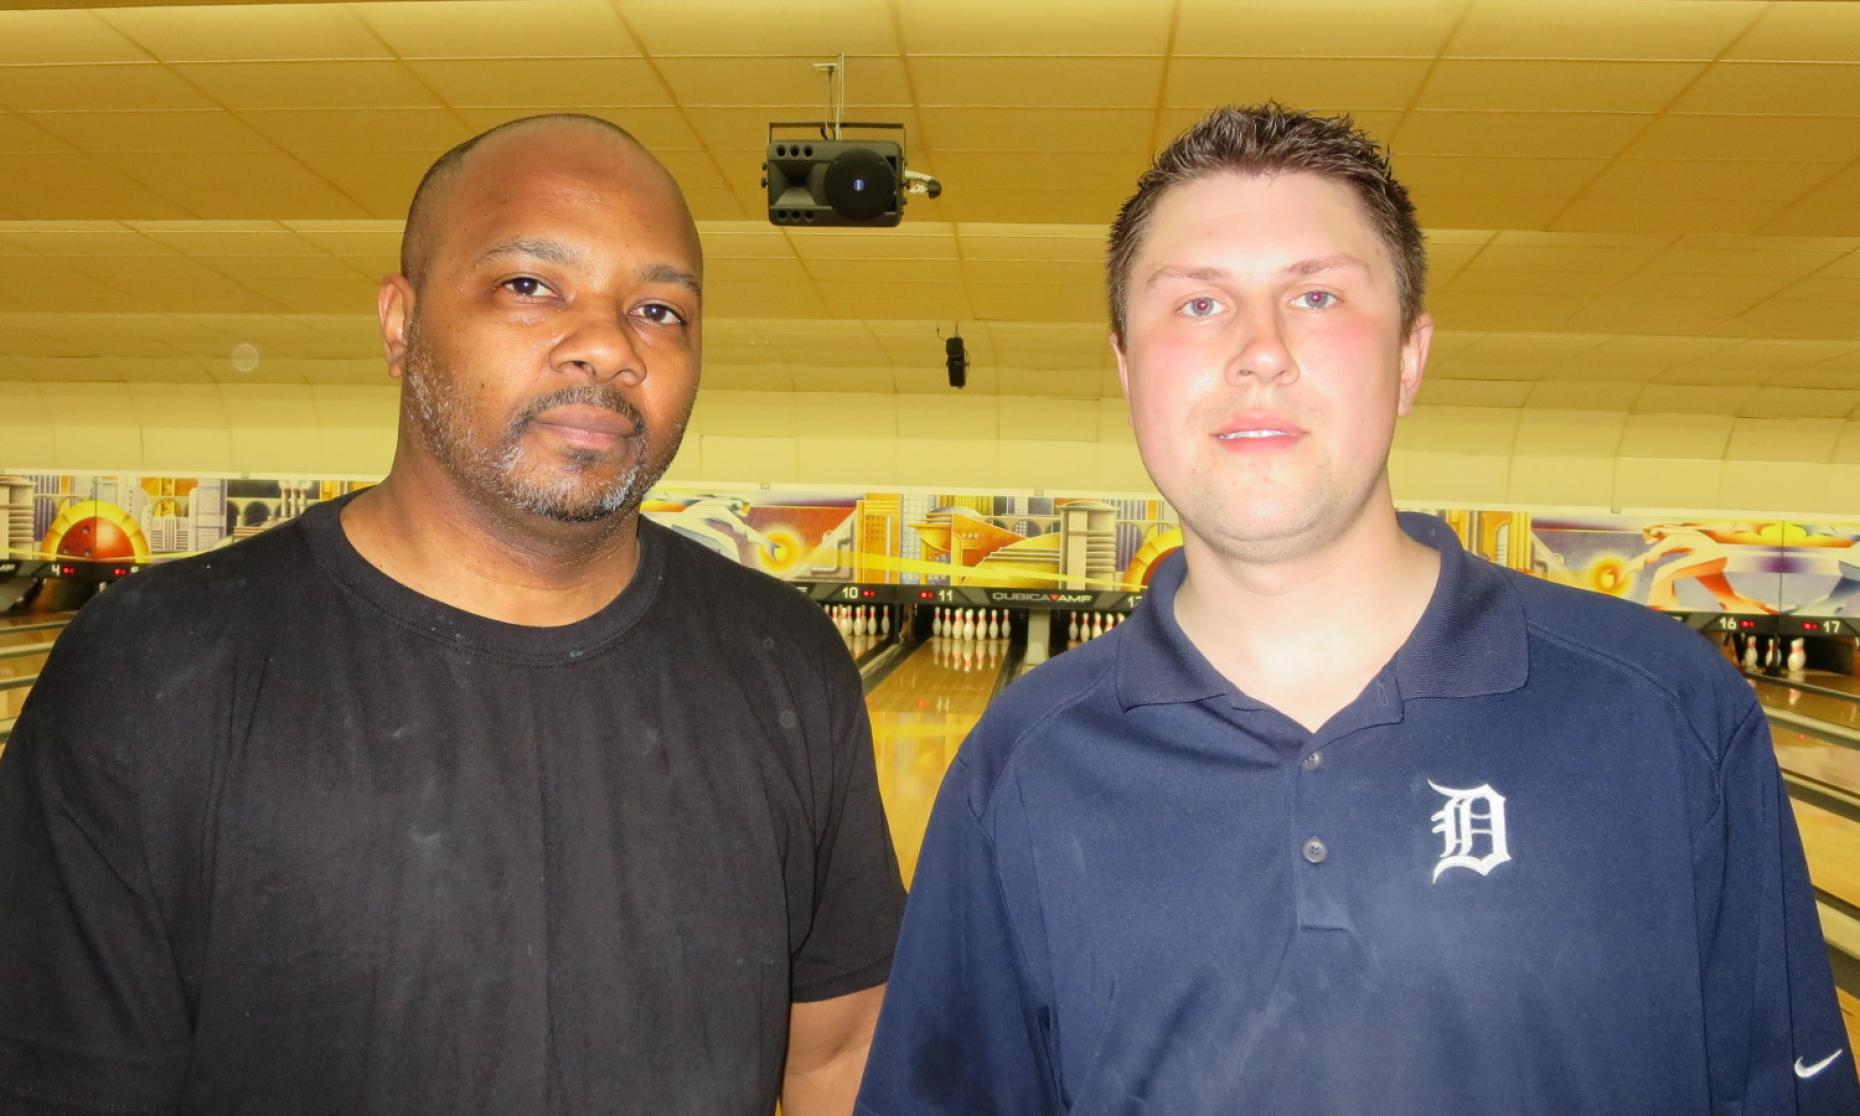 Champion Damonde Griggs and Runner-Up Craig Nidiffer